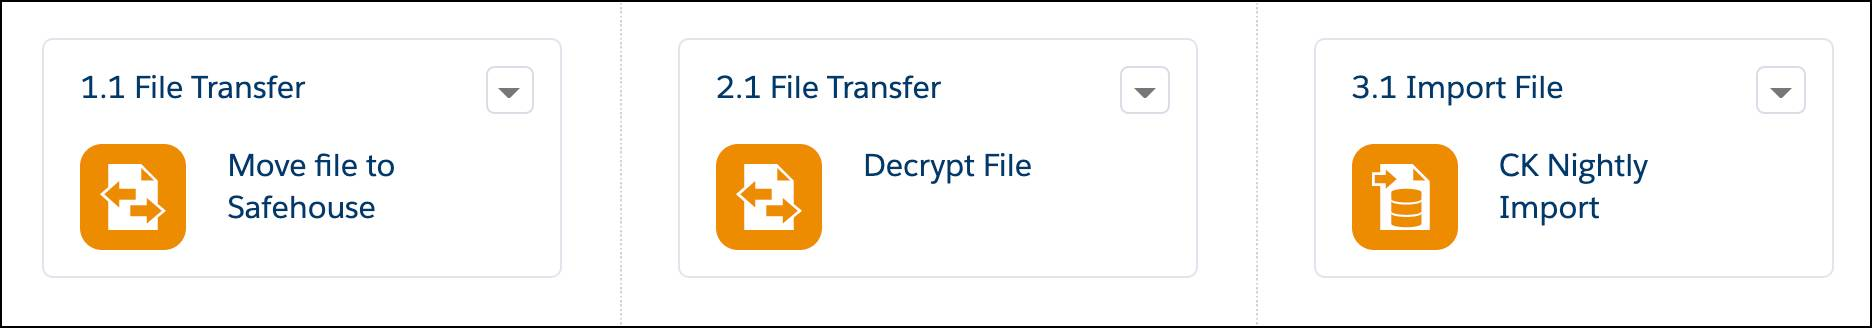 File transfer activity example for external ftp